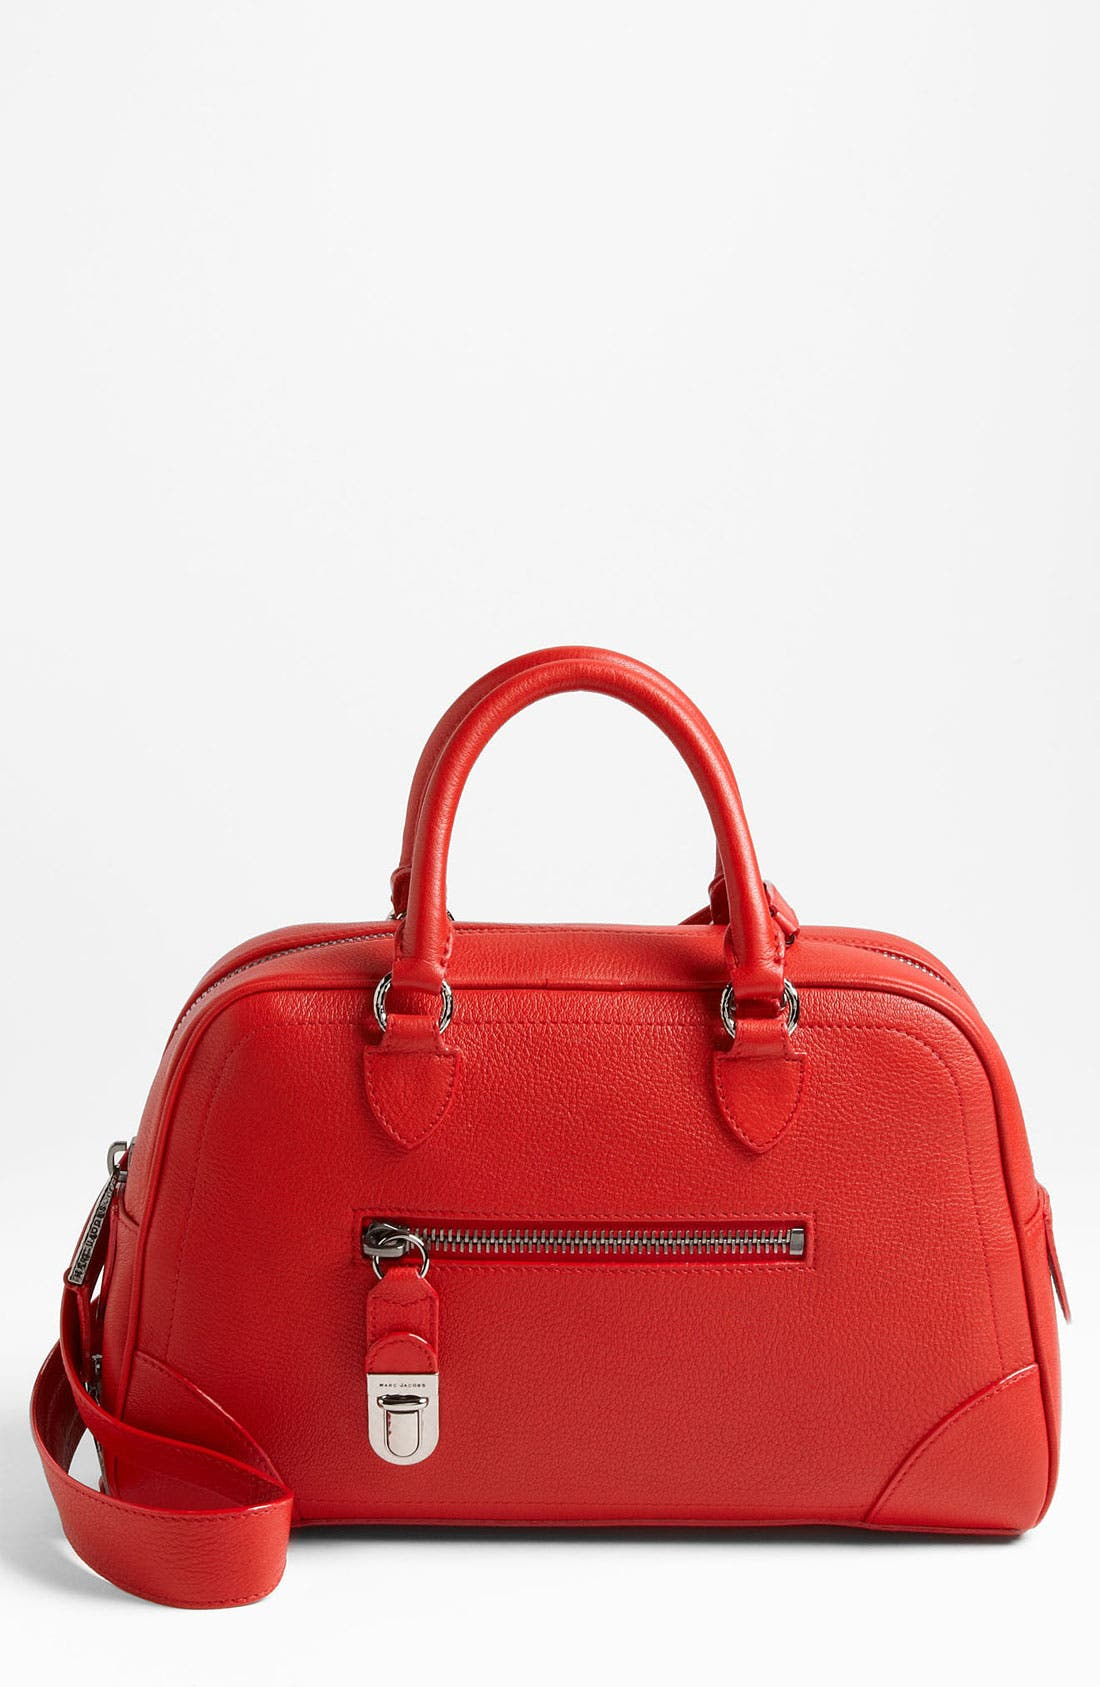 Main Image - MARC JACOBS 'Small Venetia' Leather Satchel